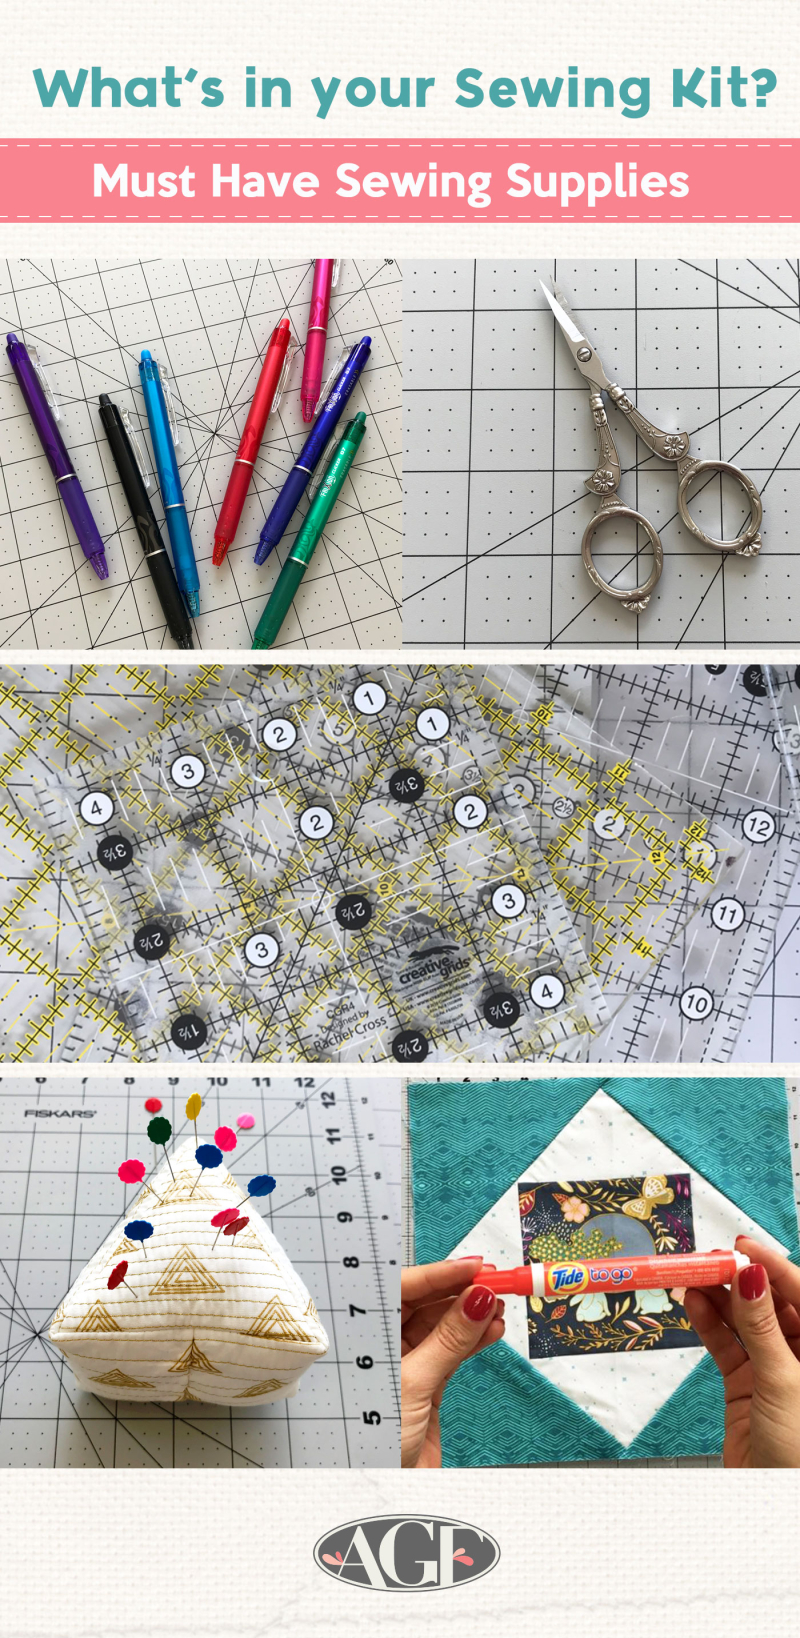 Must-Have-Sewing-Supplies--What's-in-your-Sewing-Kit